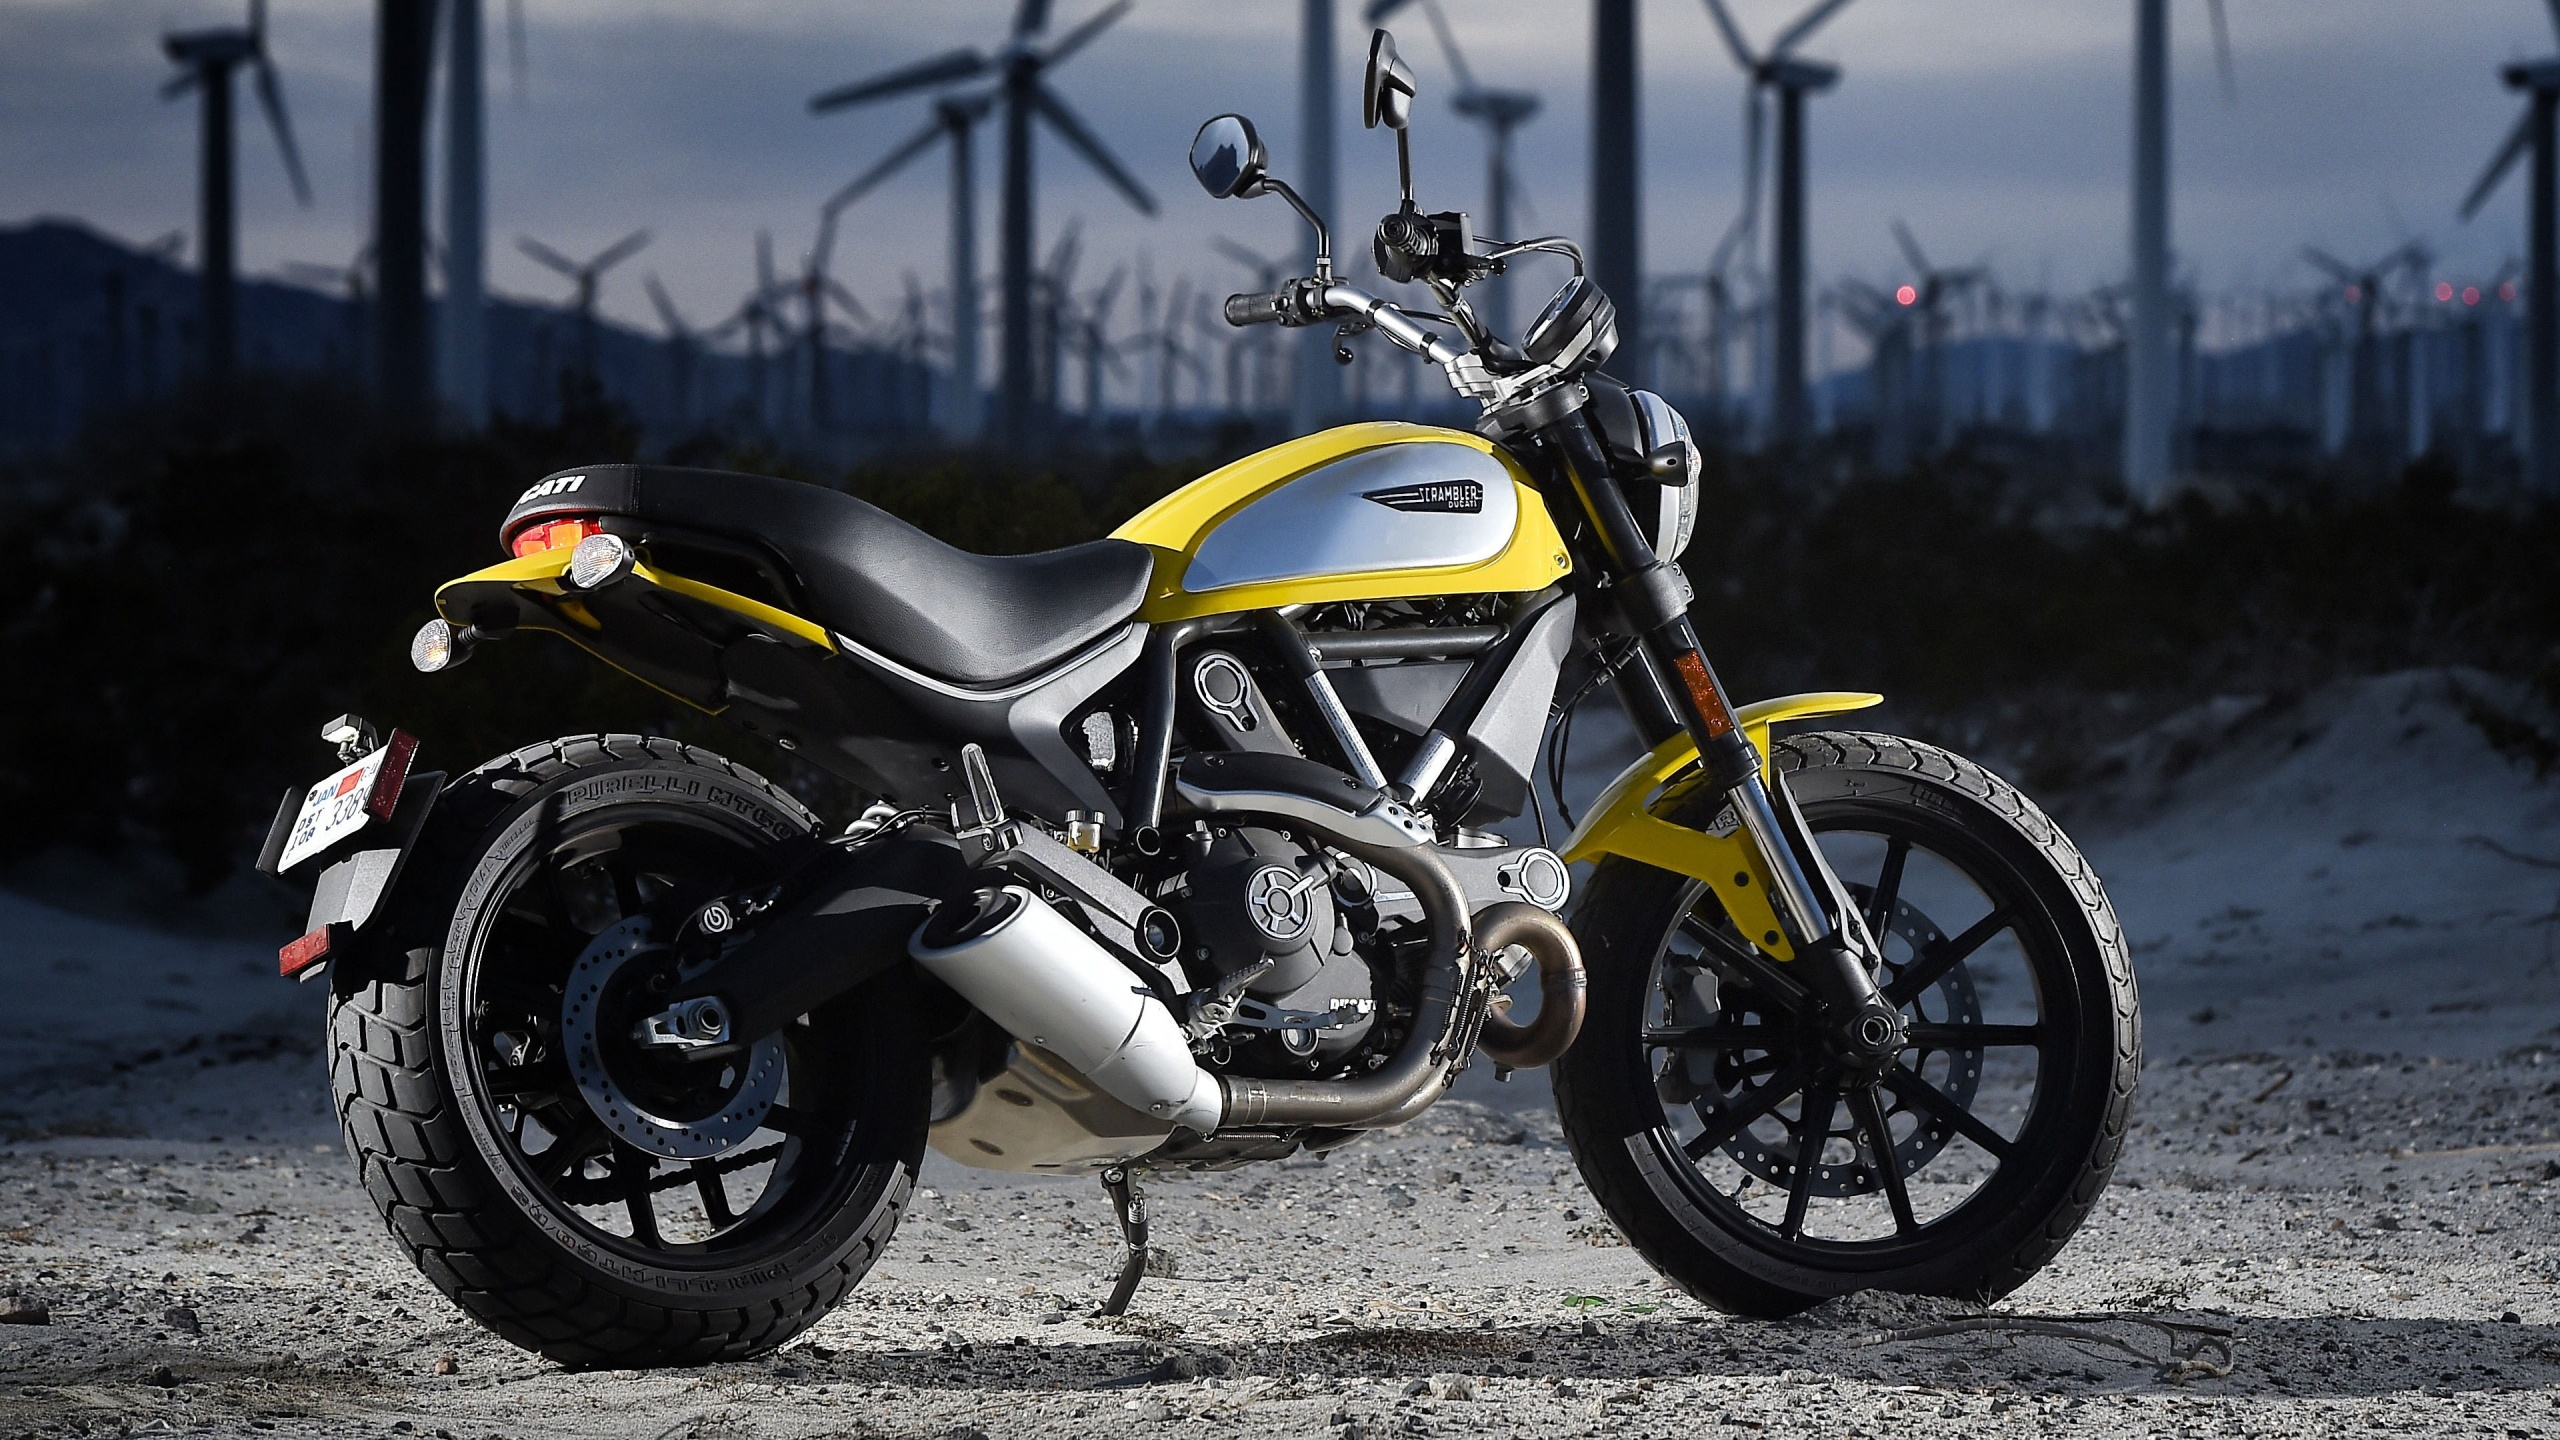 ducati scrambler icon test wallpapers - 2560x1440 - 1327490